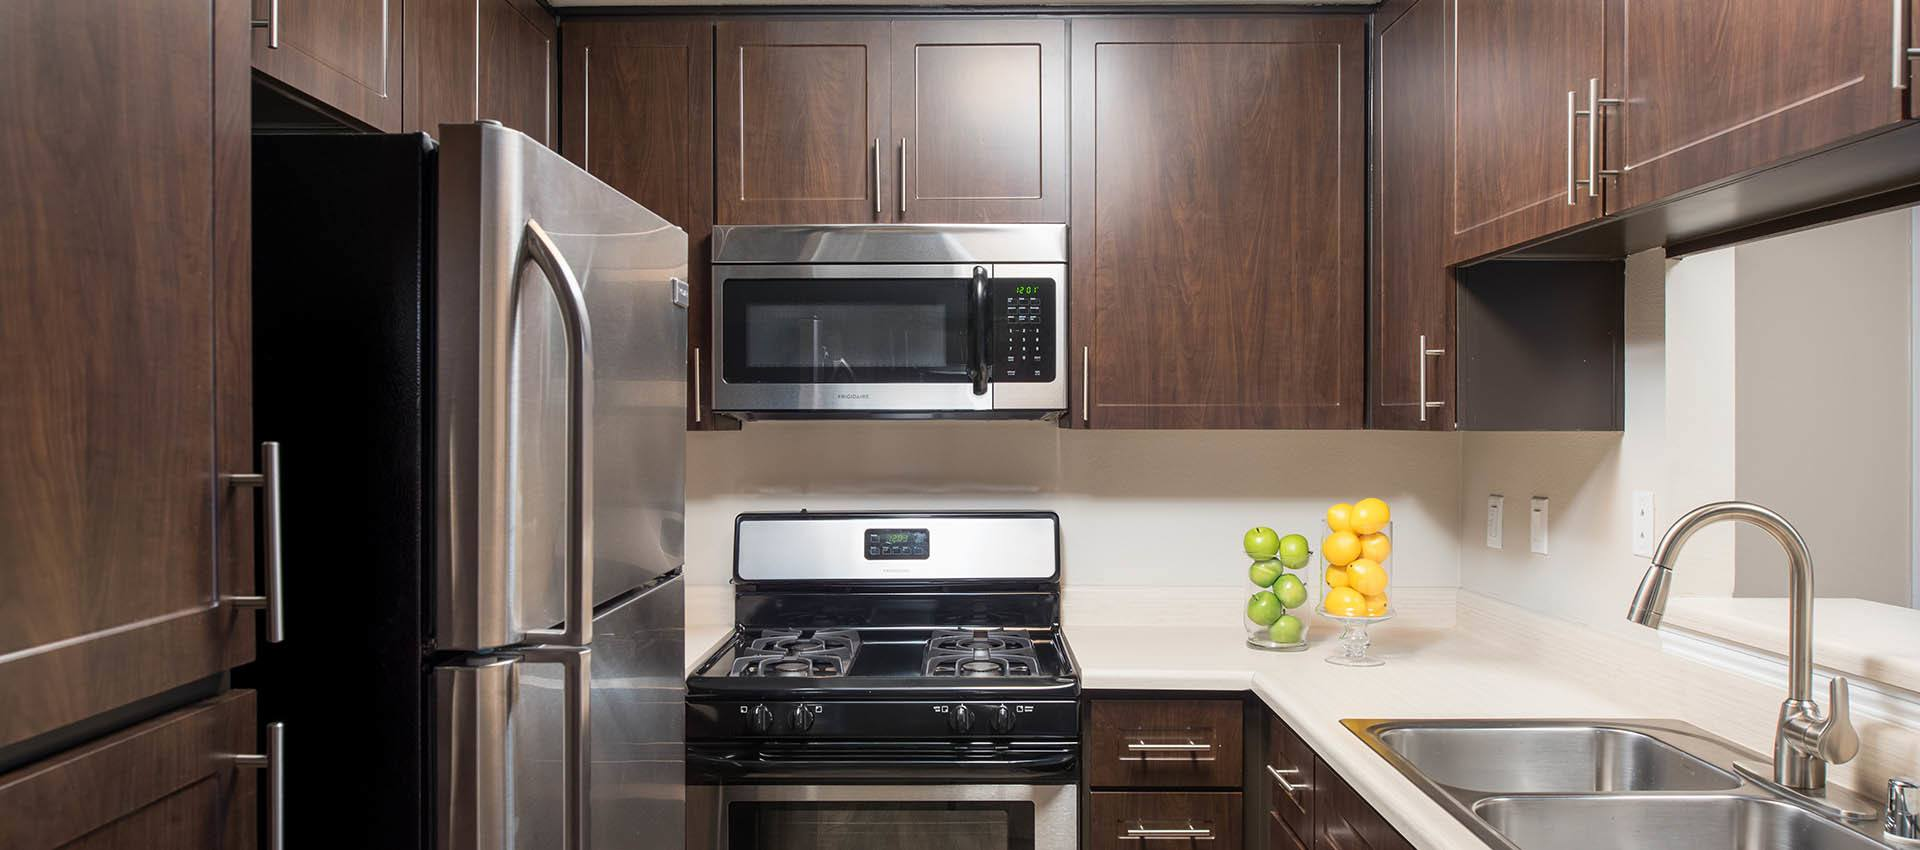 Kitchen appliances at Shadow Ridge Apartment Homes in Simi Valley, CA